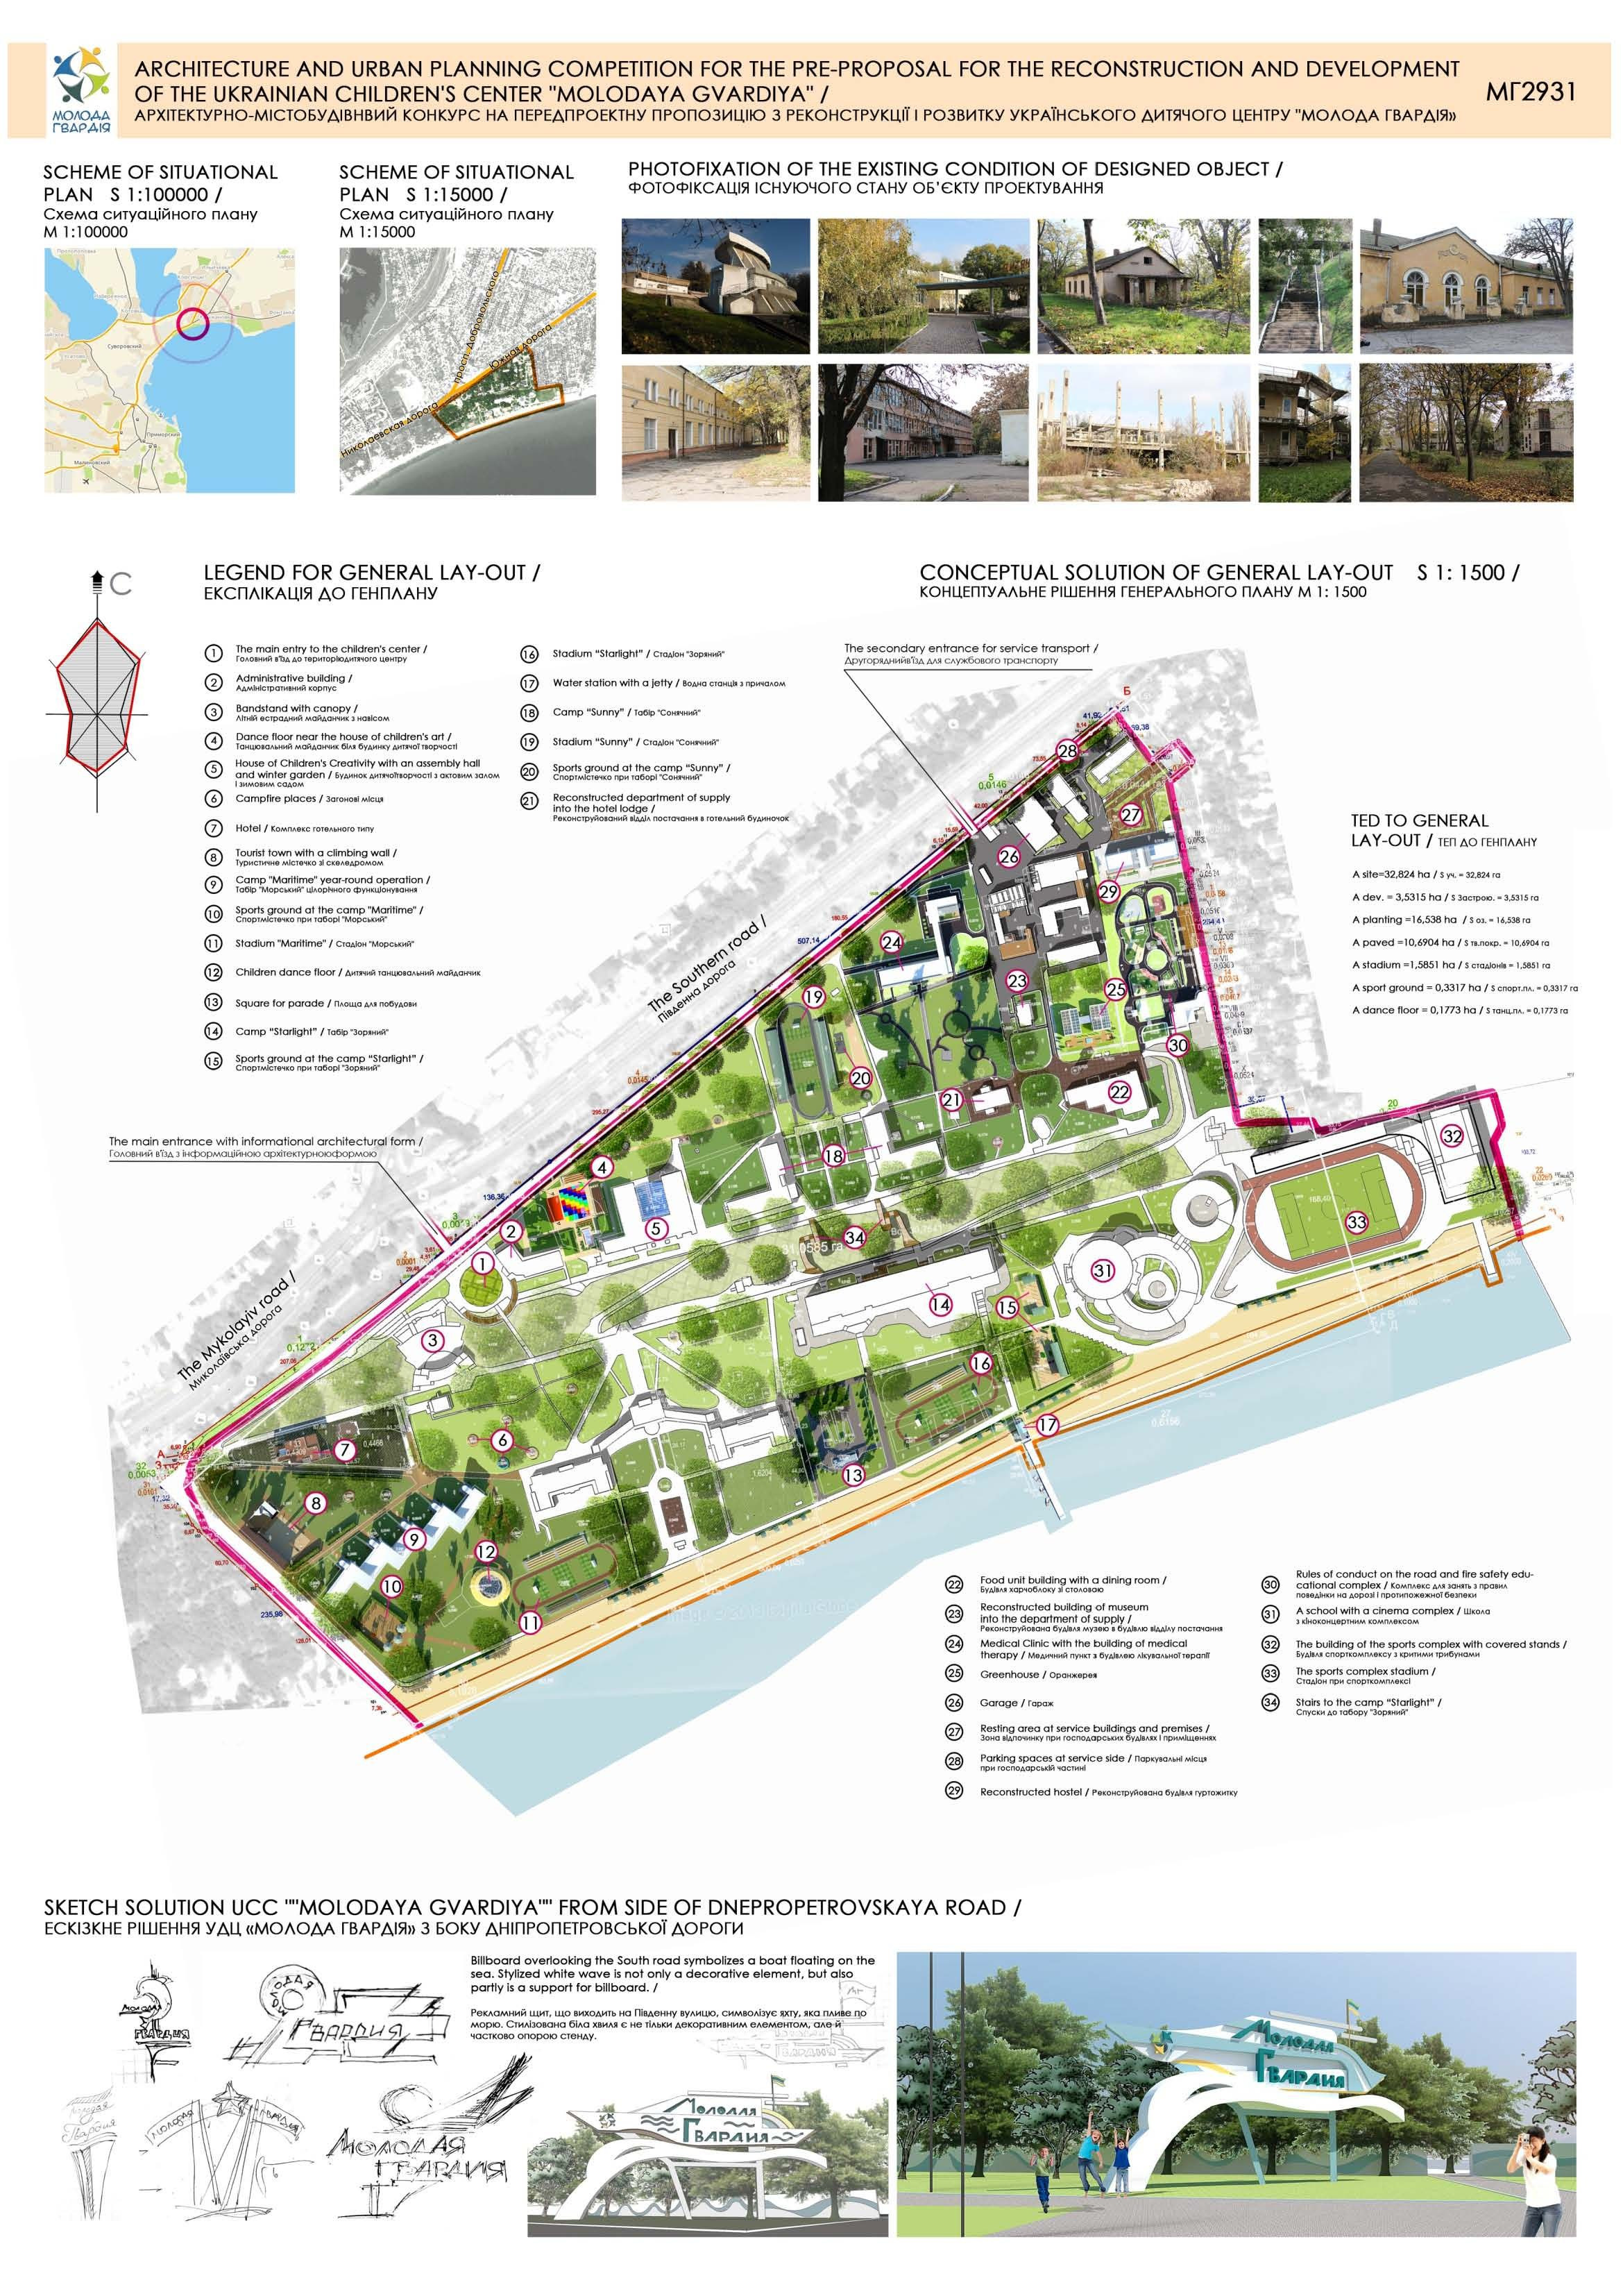 Architecture Design Concepts pre-proposal-for-reconstruction-and-development-childrens-center